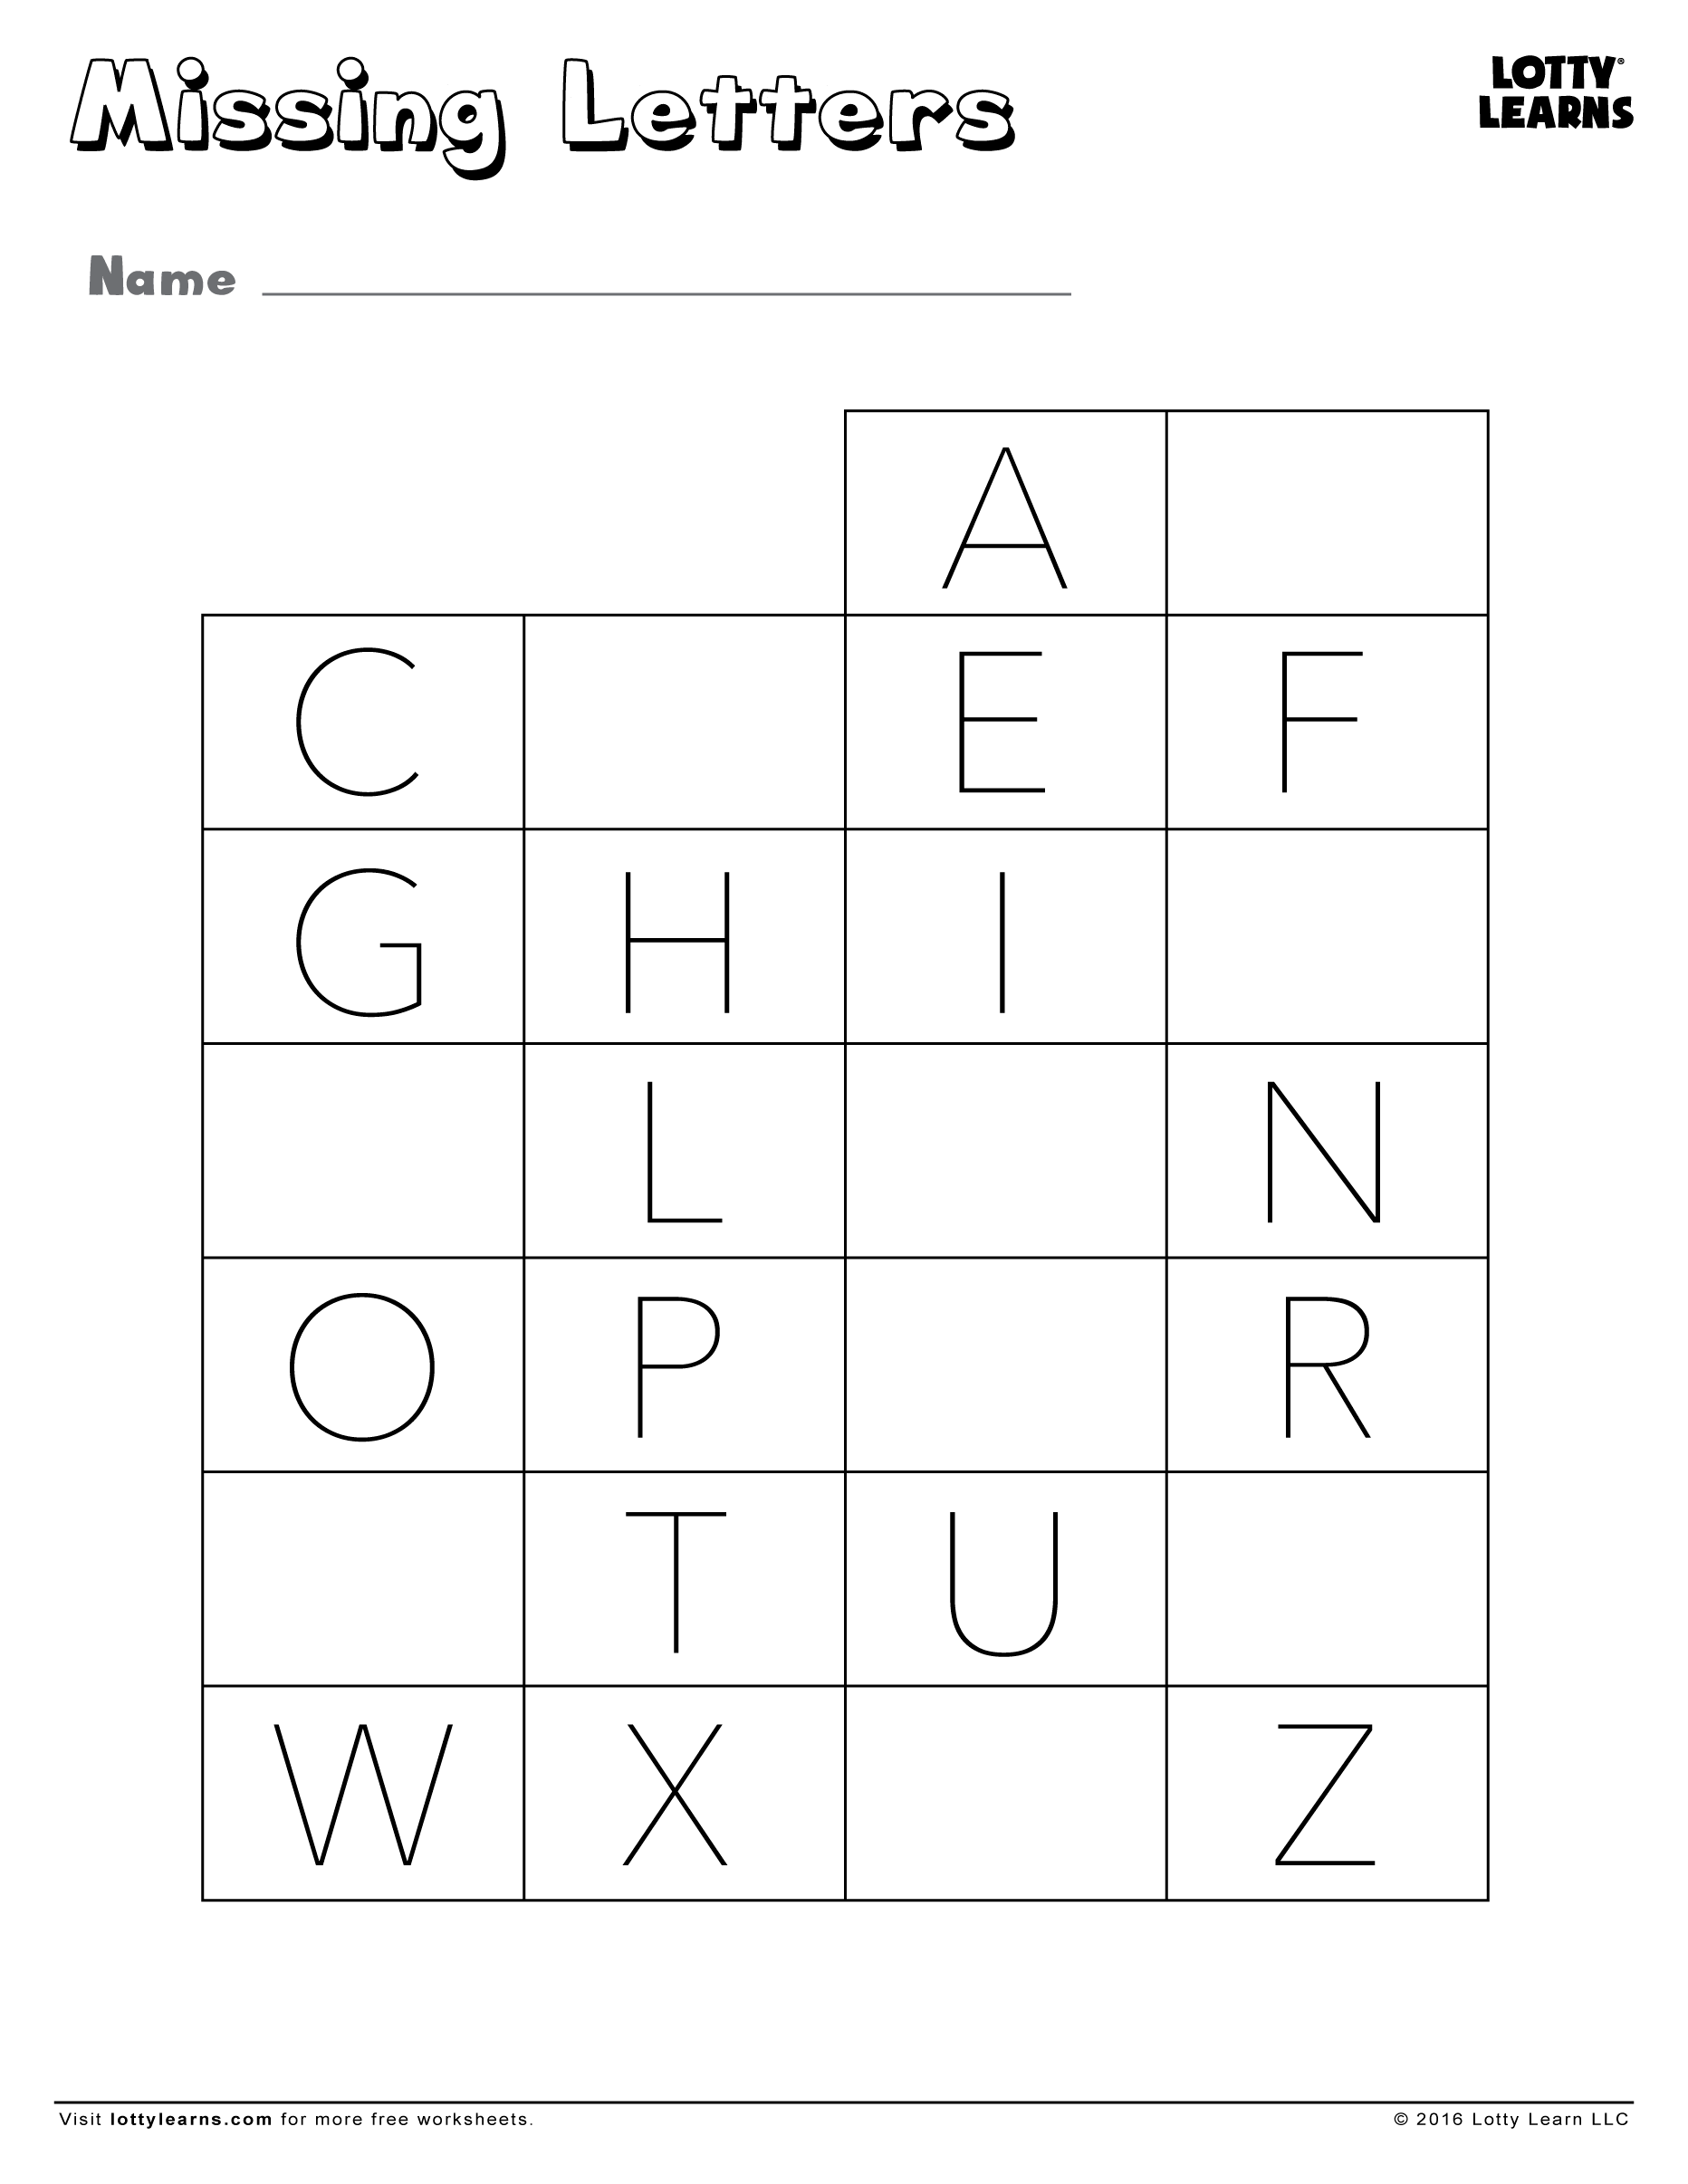 Missing Capital Letters